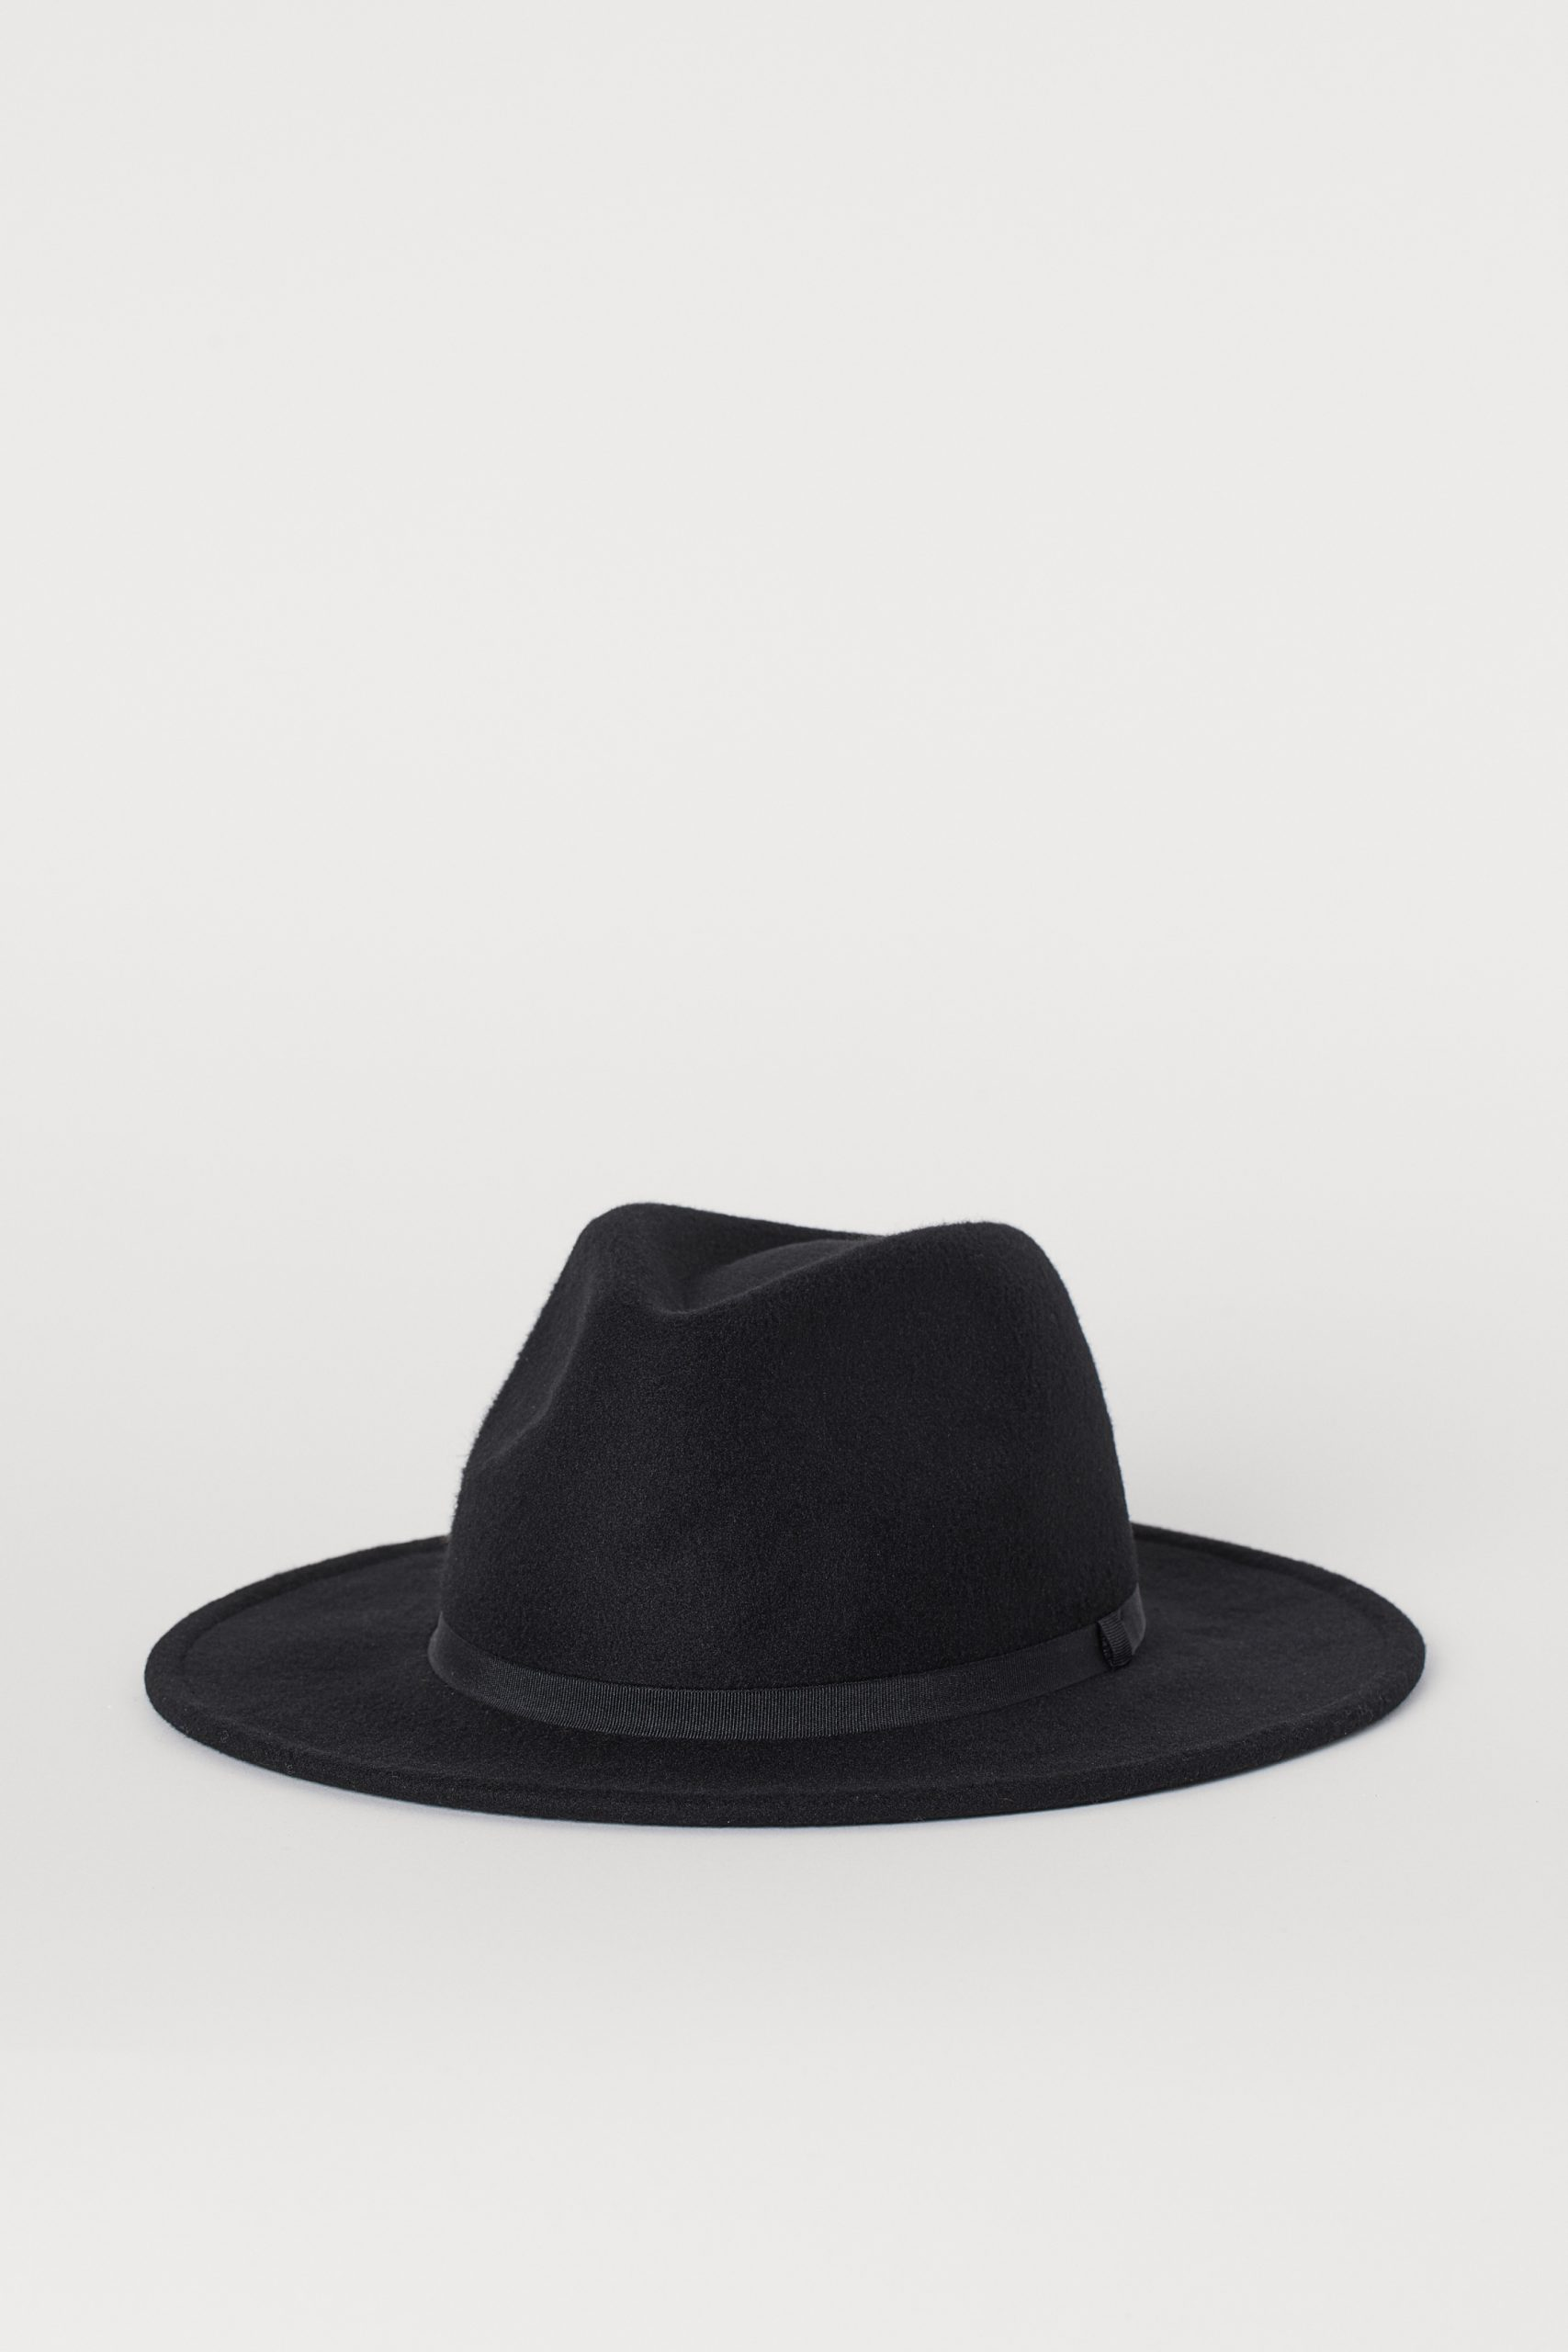 H&M Womens Felt Hat - Black